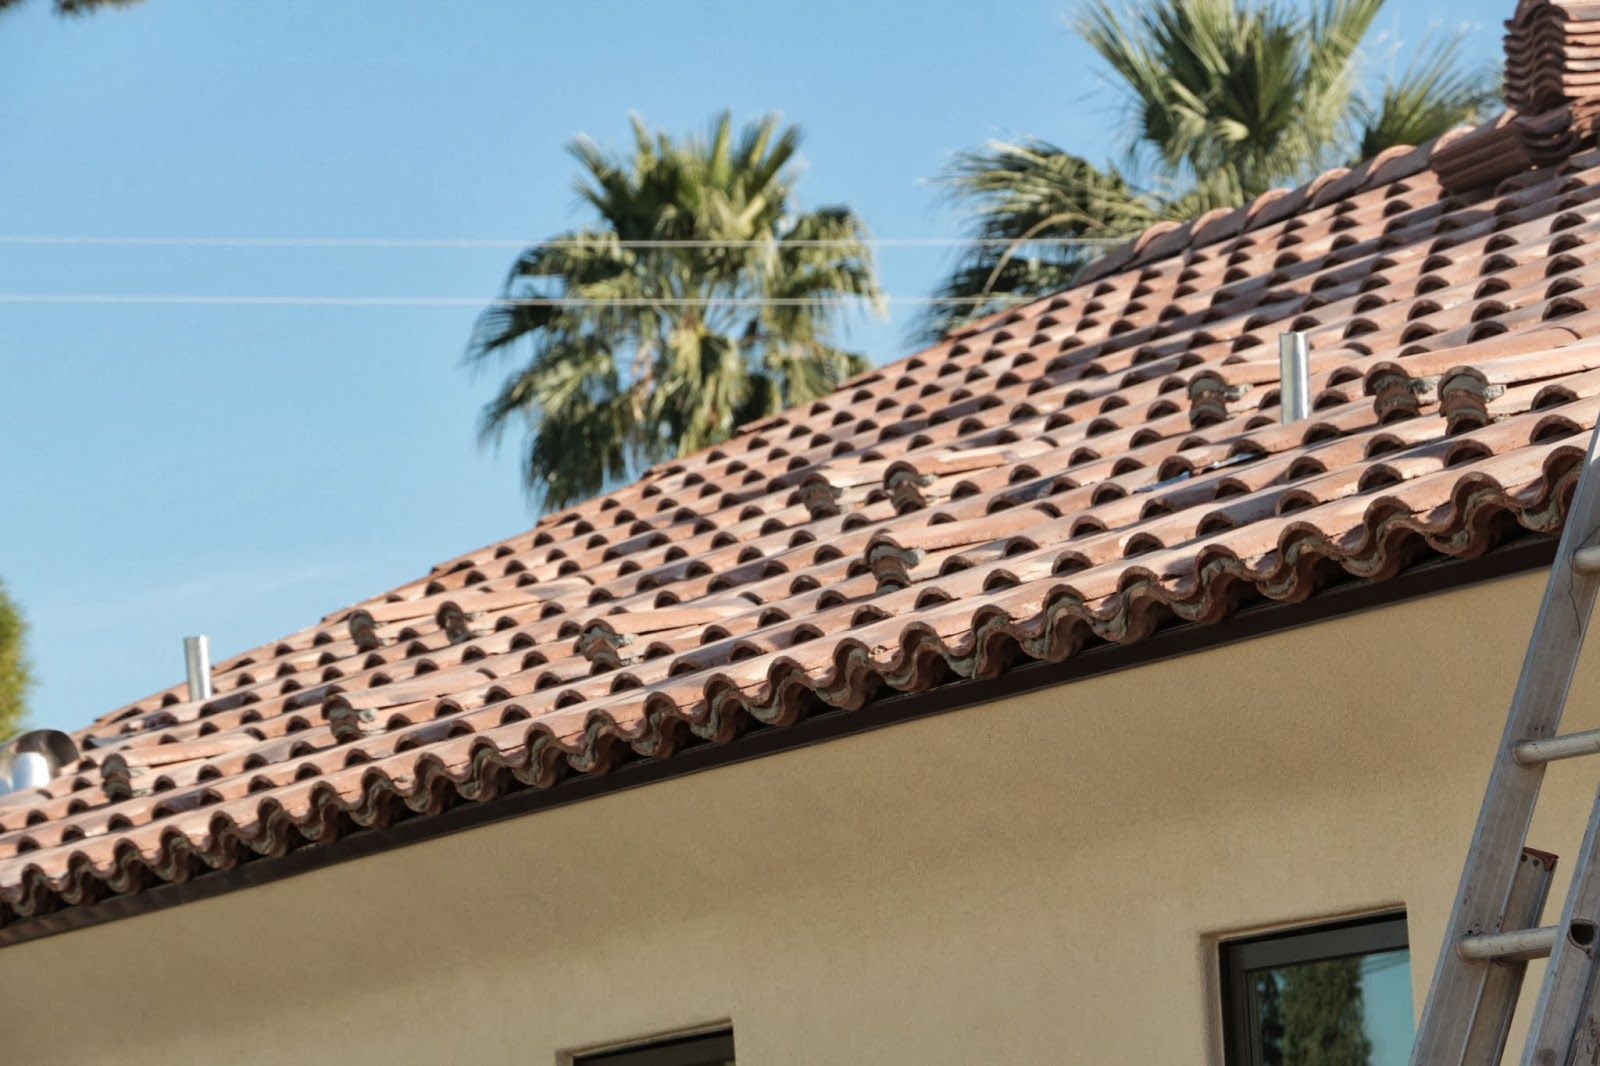 Garage Doors Floor Tile And Roof Continuation Roofing Roofing Materials Fibreglass Roof